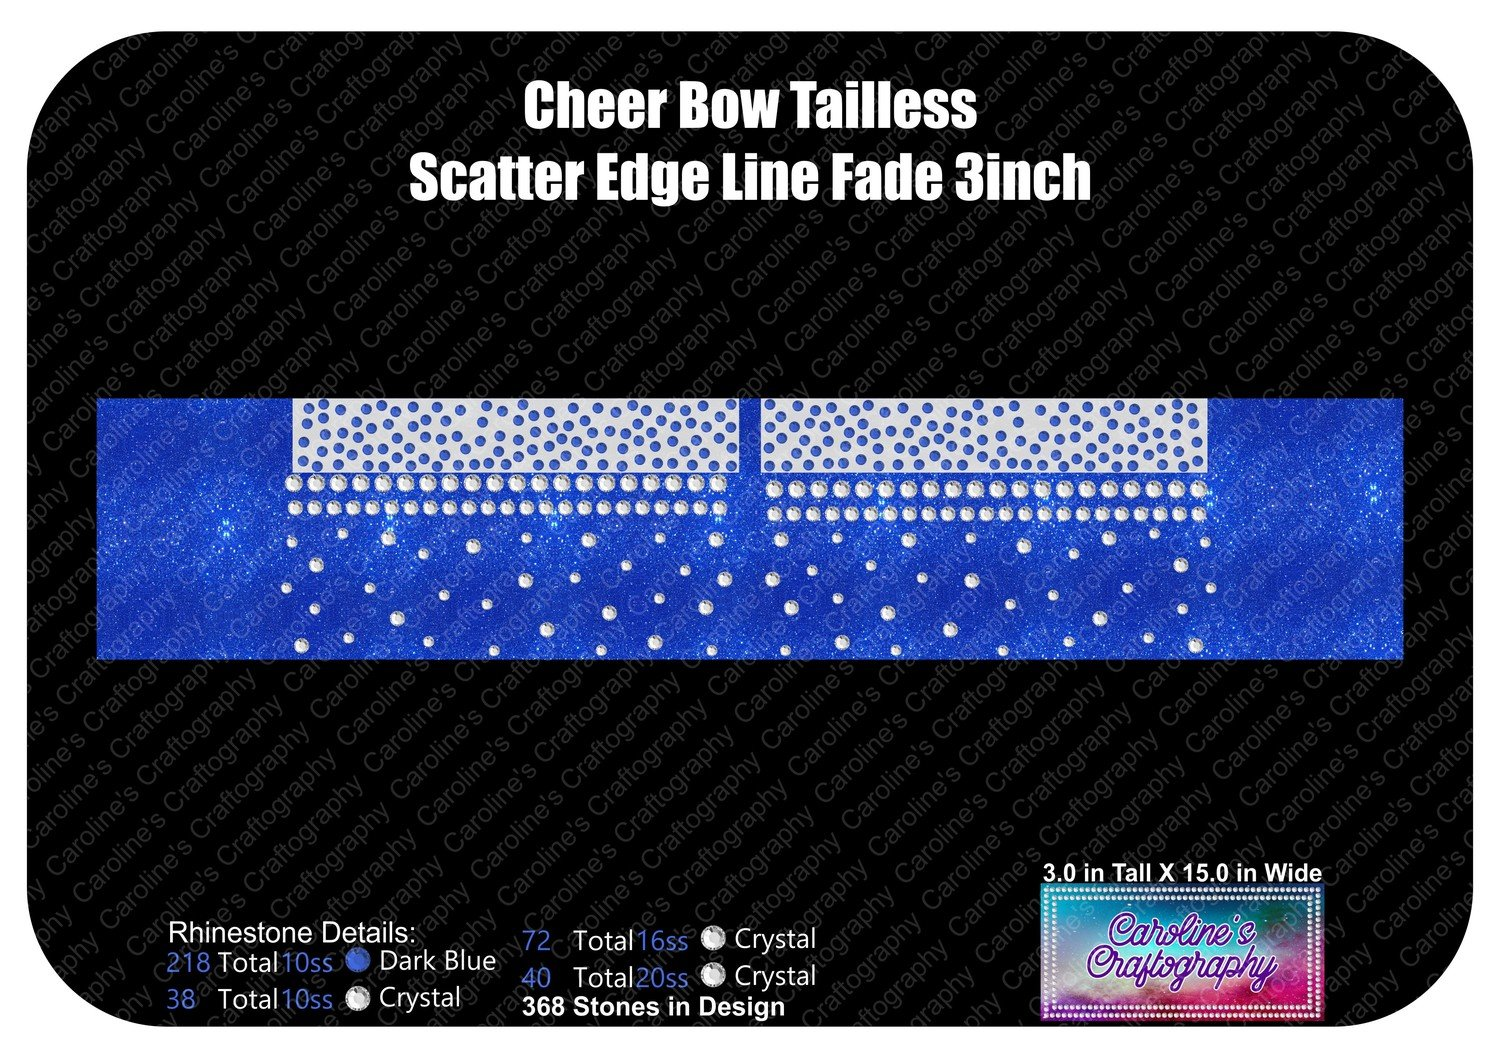 Tailless Cheer Bow Scatter Edge Line Fade 3in Stone Vinyl